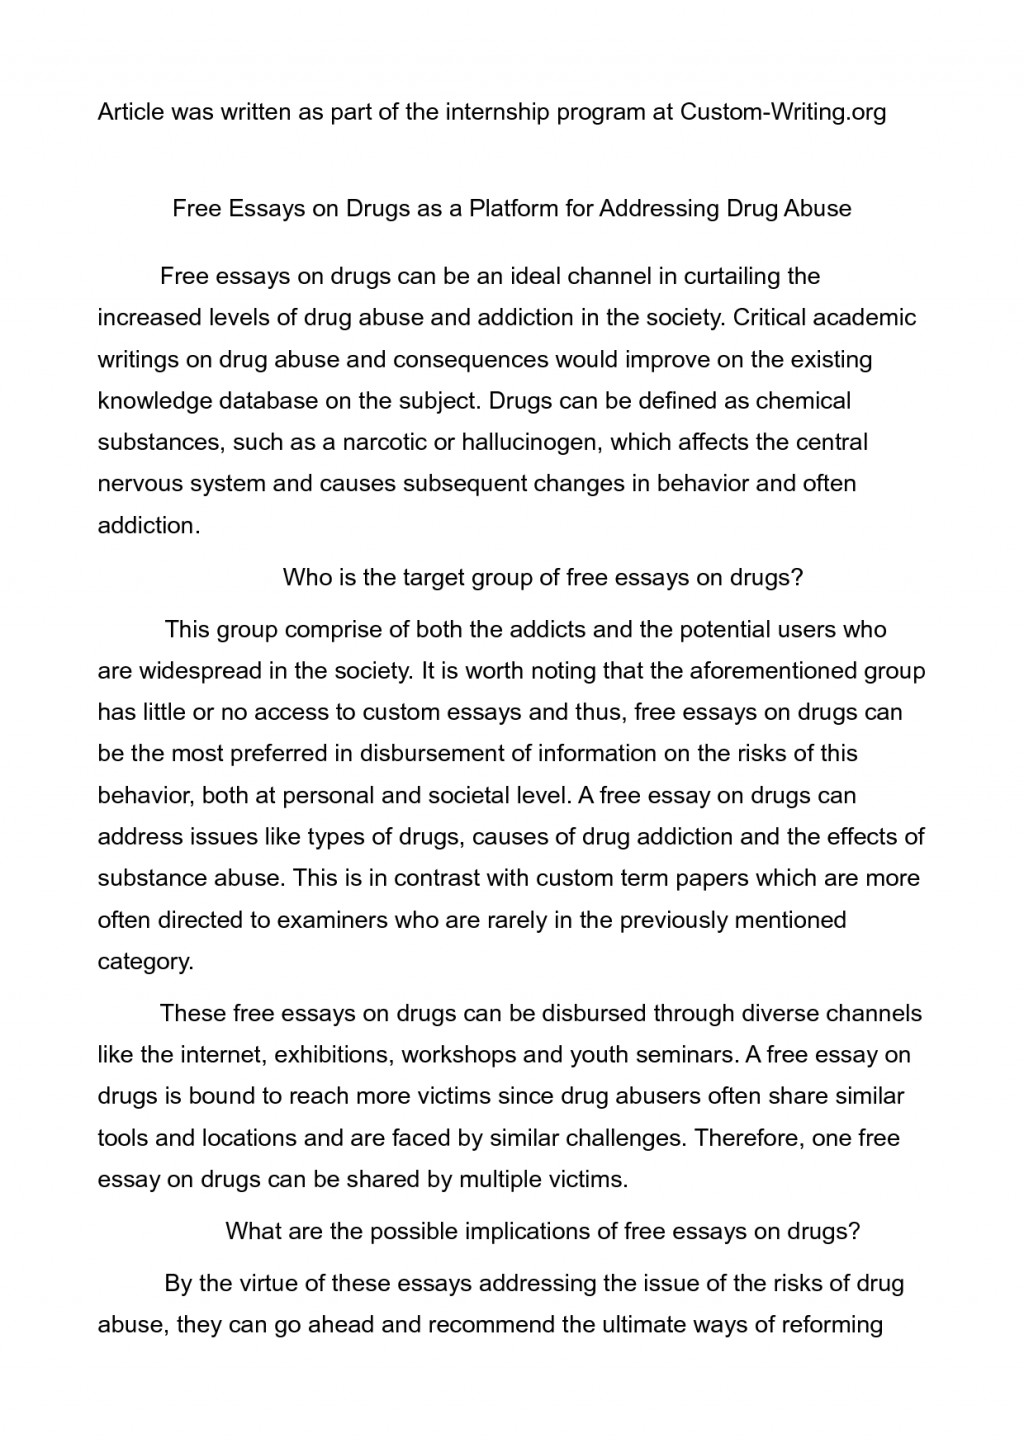 006 Argumentation Essay About Drugs Dreaded Argumentative Conclusion Sentence Starters Introduction Format 9th Grade Large